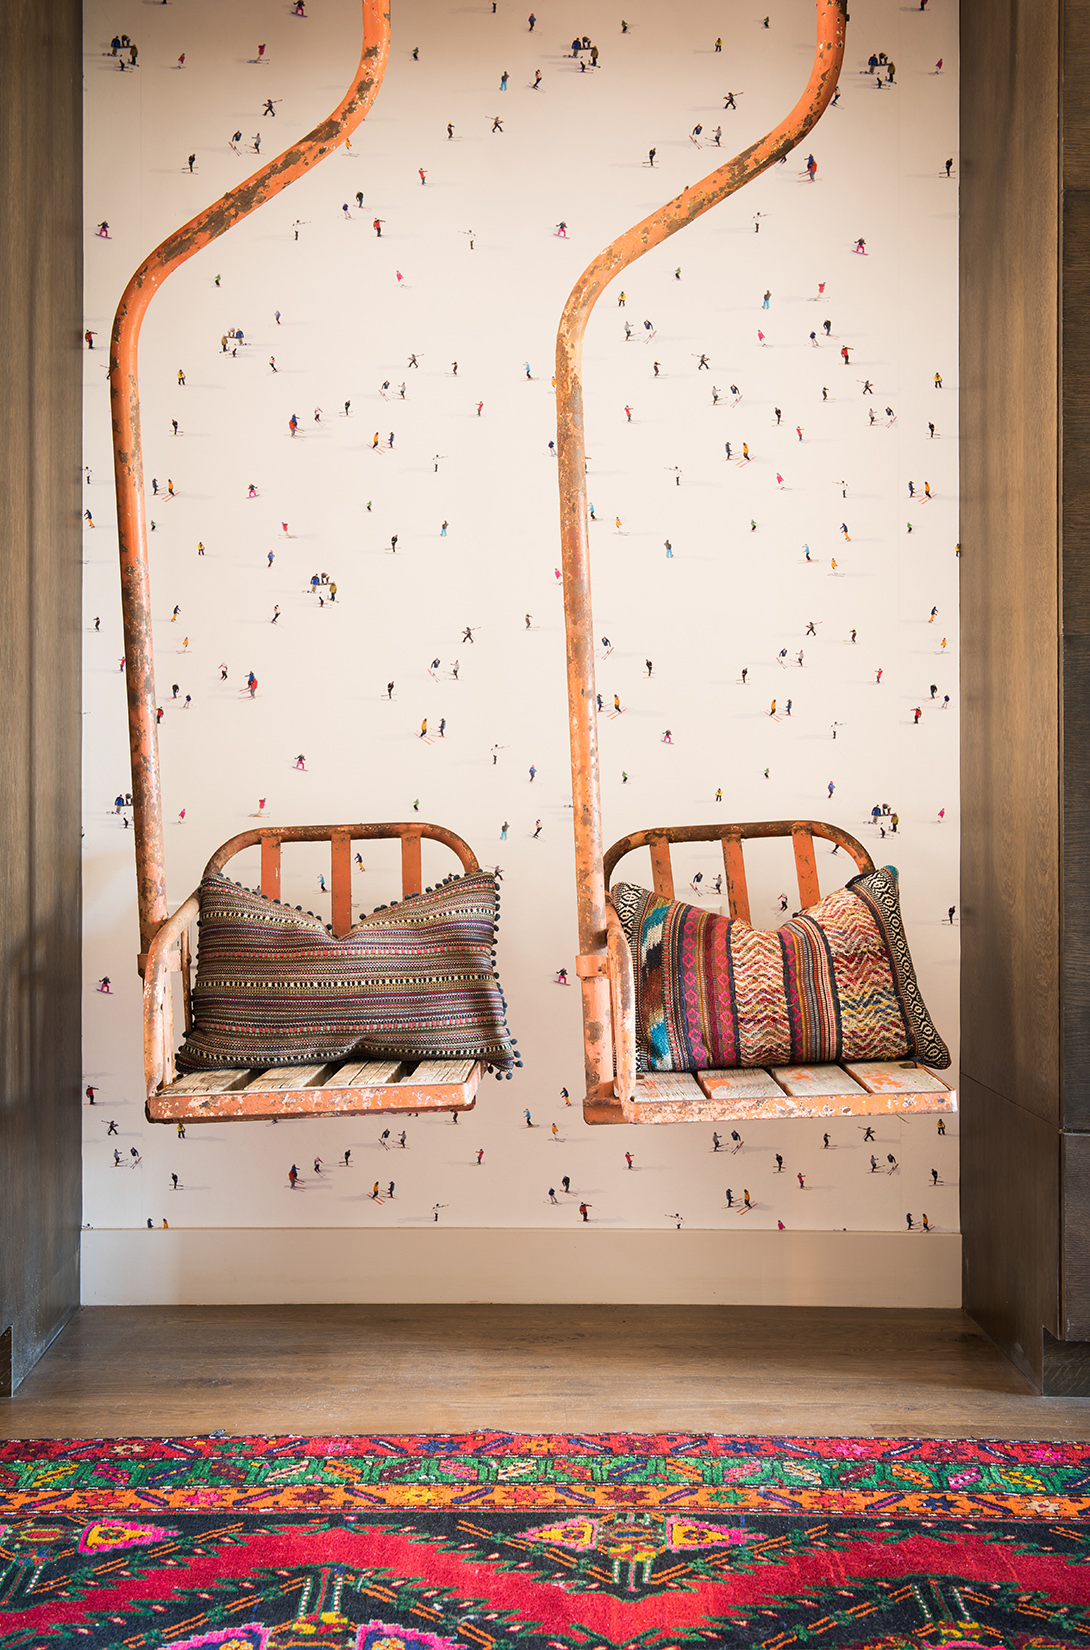 YES!! Colorful and fun! I love the use of these old chairlifts in this entryway. The wallpaper is a nice touch too! Interior Design -    Carole Sisson Designs